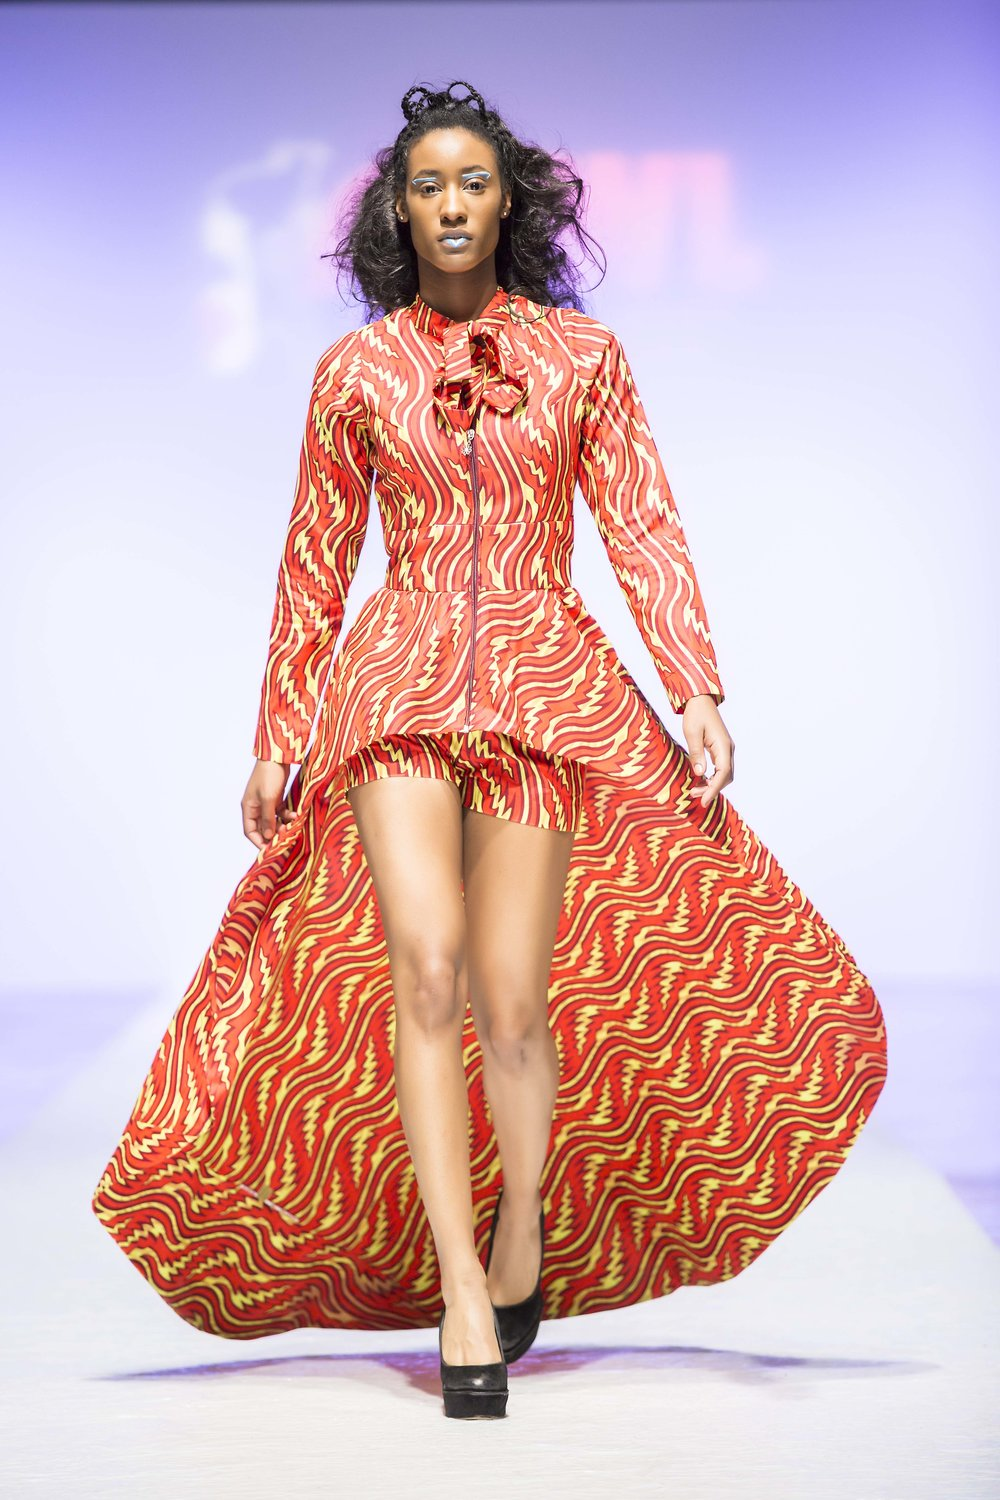 African Fashion Today-Joanna Mitroi Photography 0830 - lores - Copy.jpg